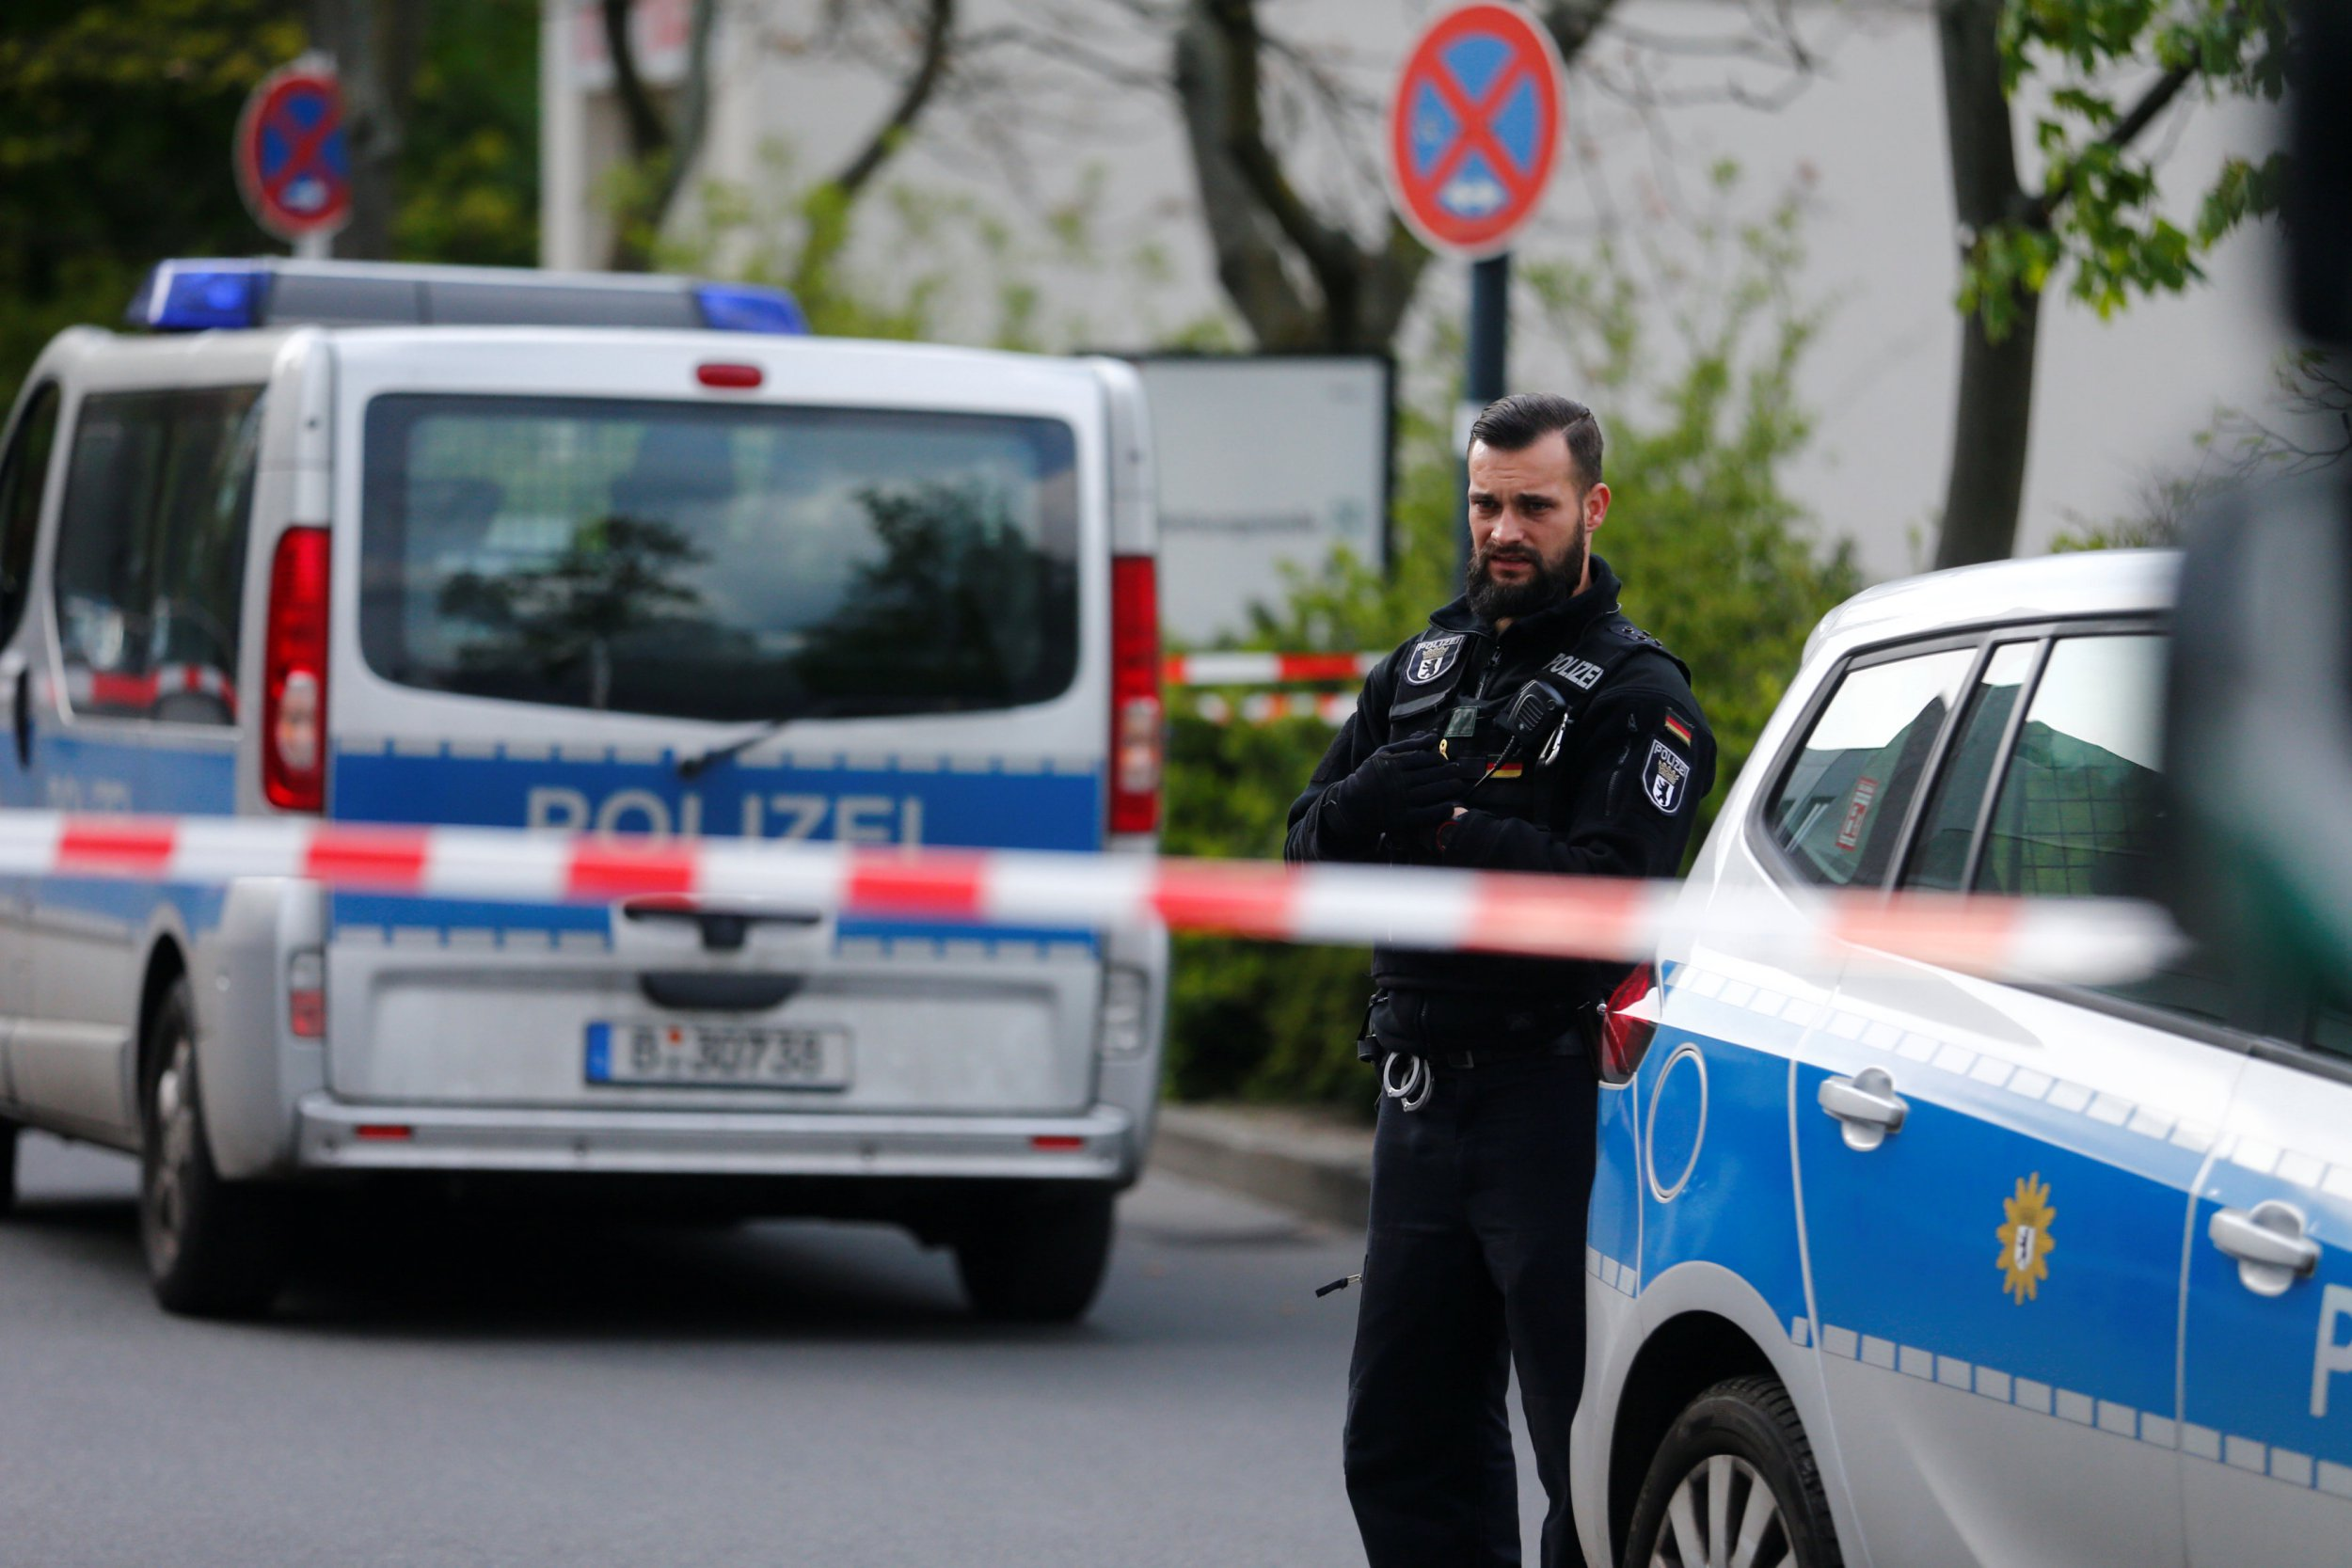 Armed police shoot man after 'threat' at Berlin hospital